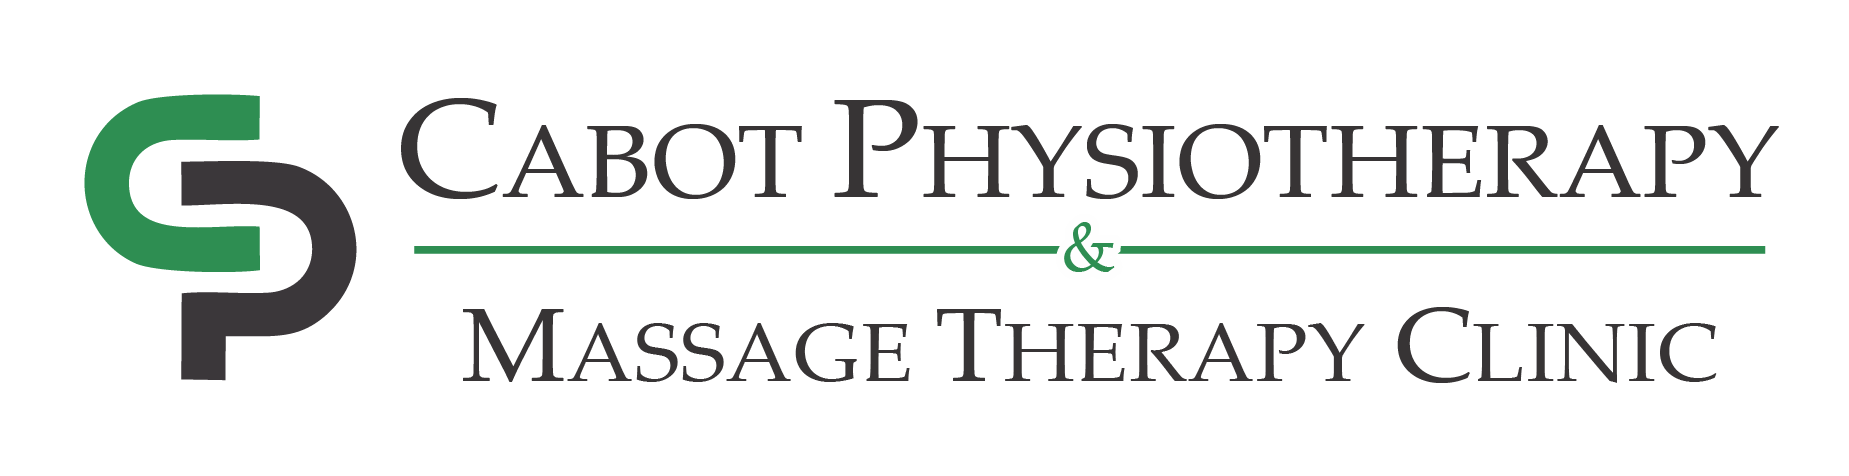 Cabot Physiotherapy